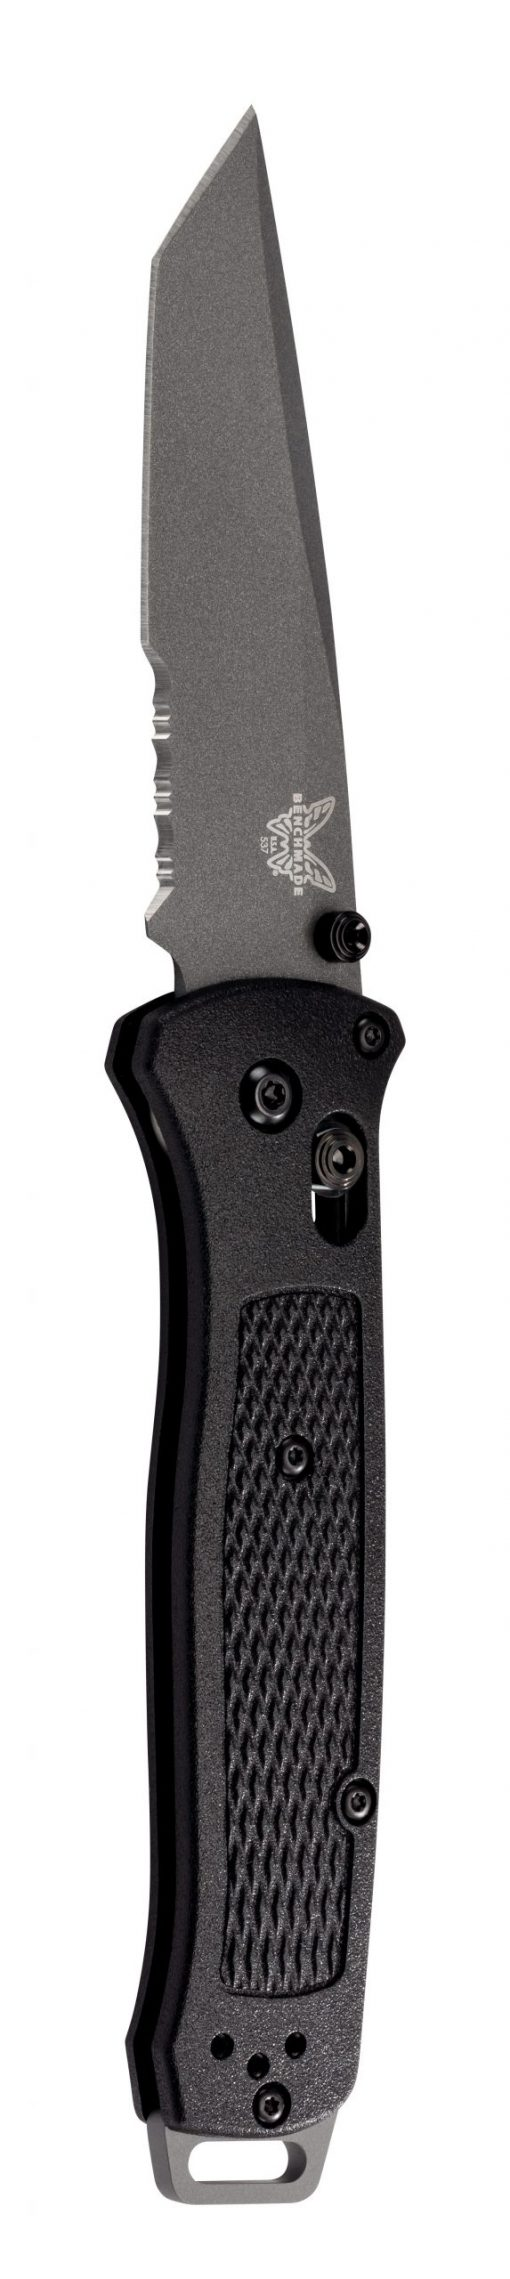 Benchmade Bailout Grey CPM-3V Combo Tanto Blade Black Grivory Handle Front Side Open Up